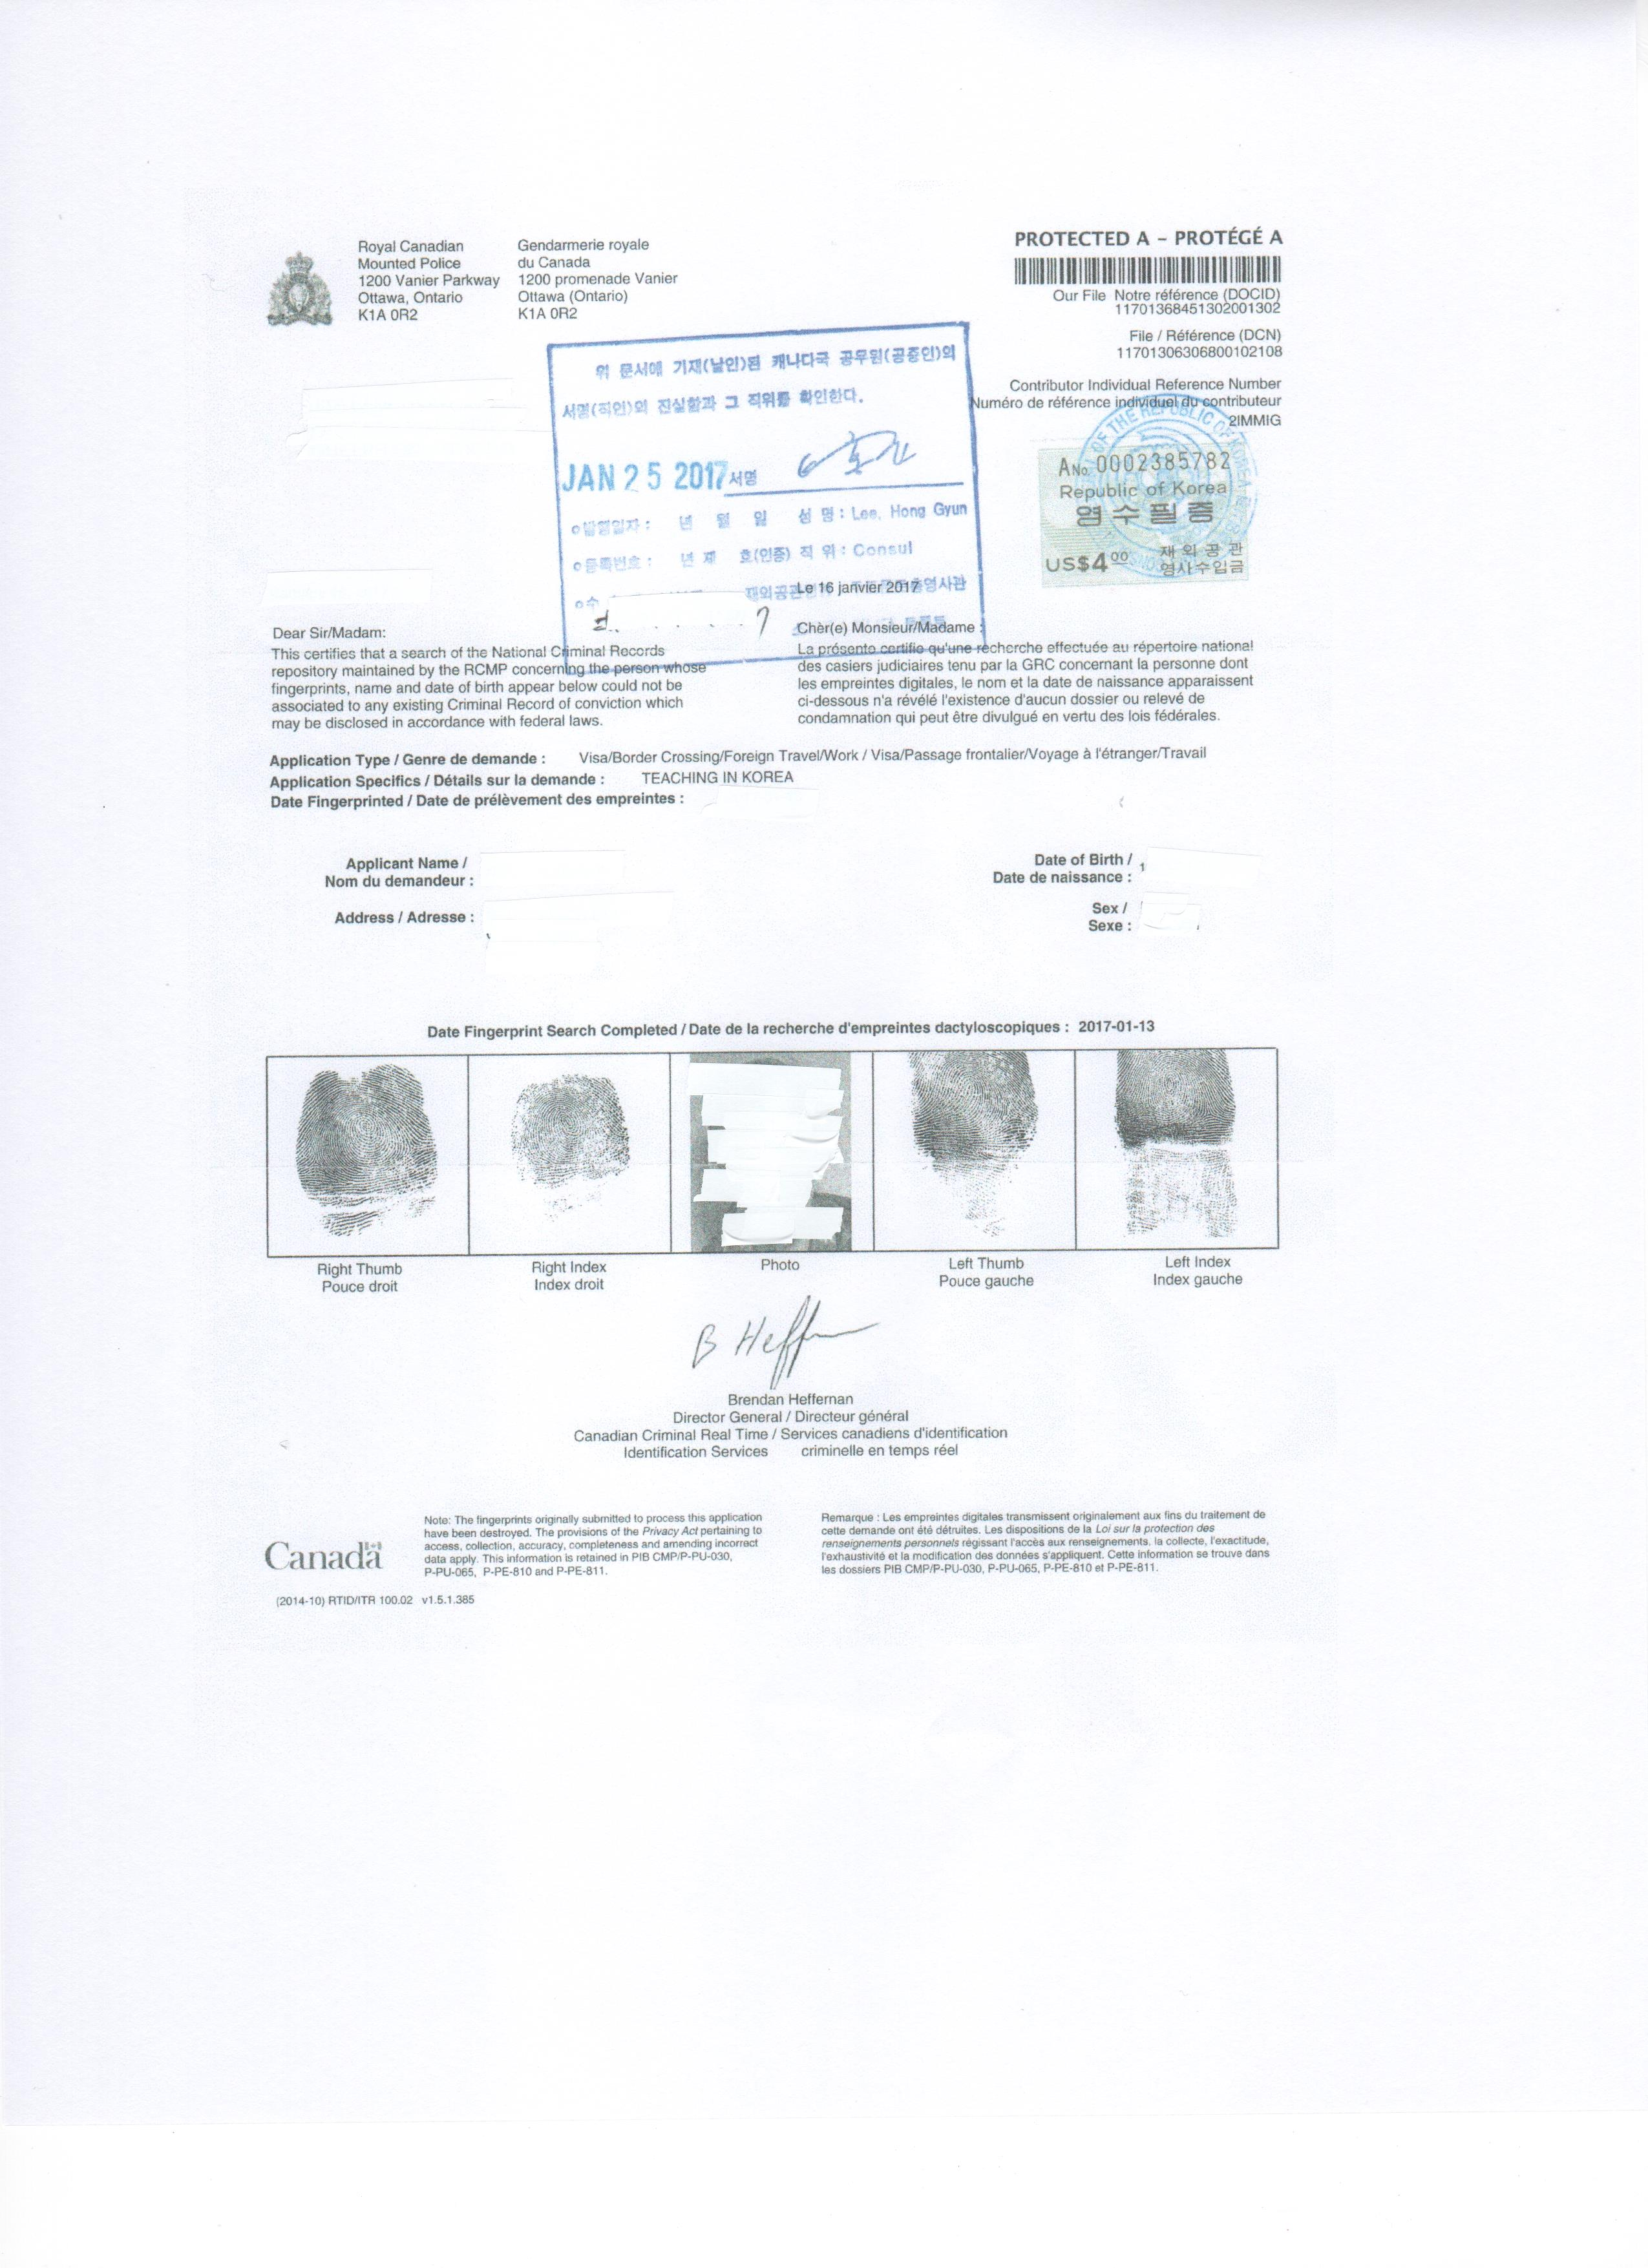 Aclipse Canadian Document Examples